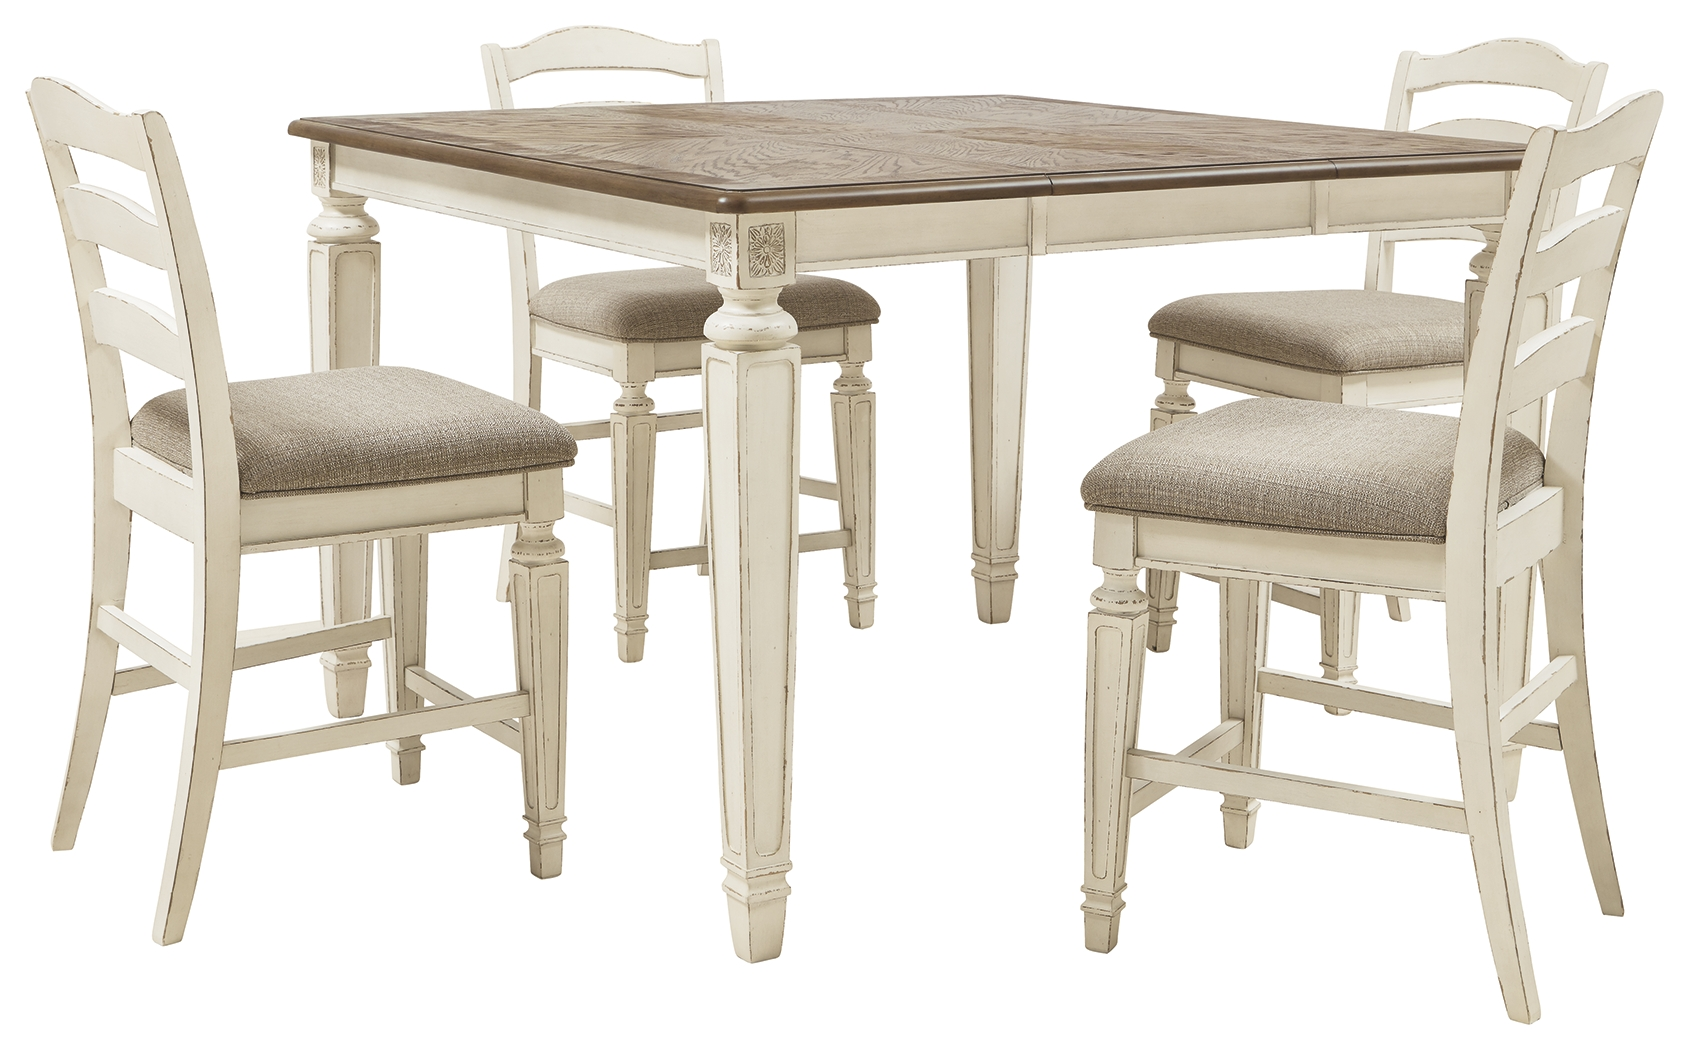 Realyn Counter Height Dining Room Table By Signature Design By Ashley 451121823 Turner S Budget Furniture